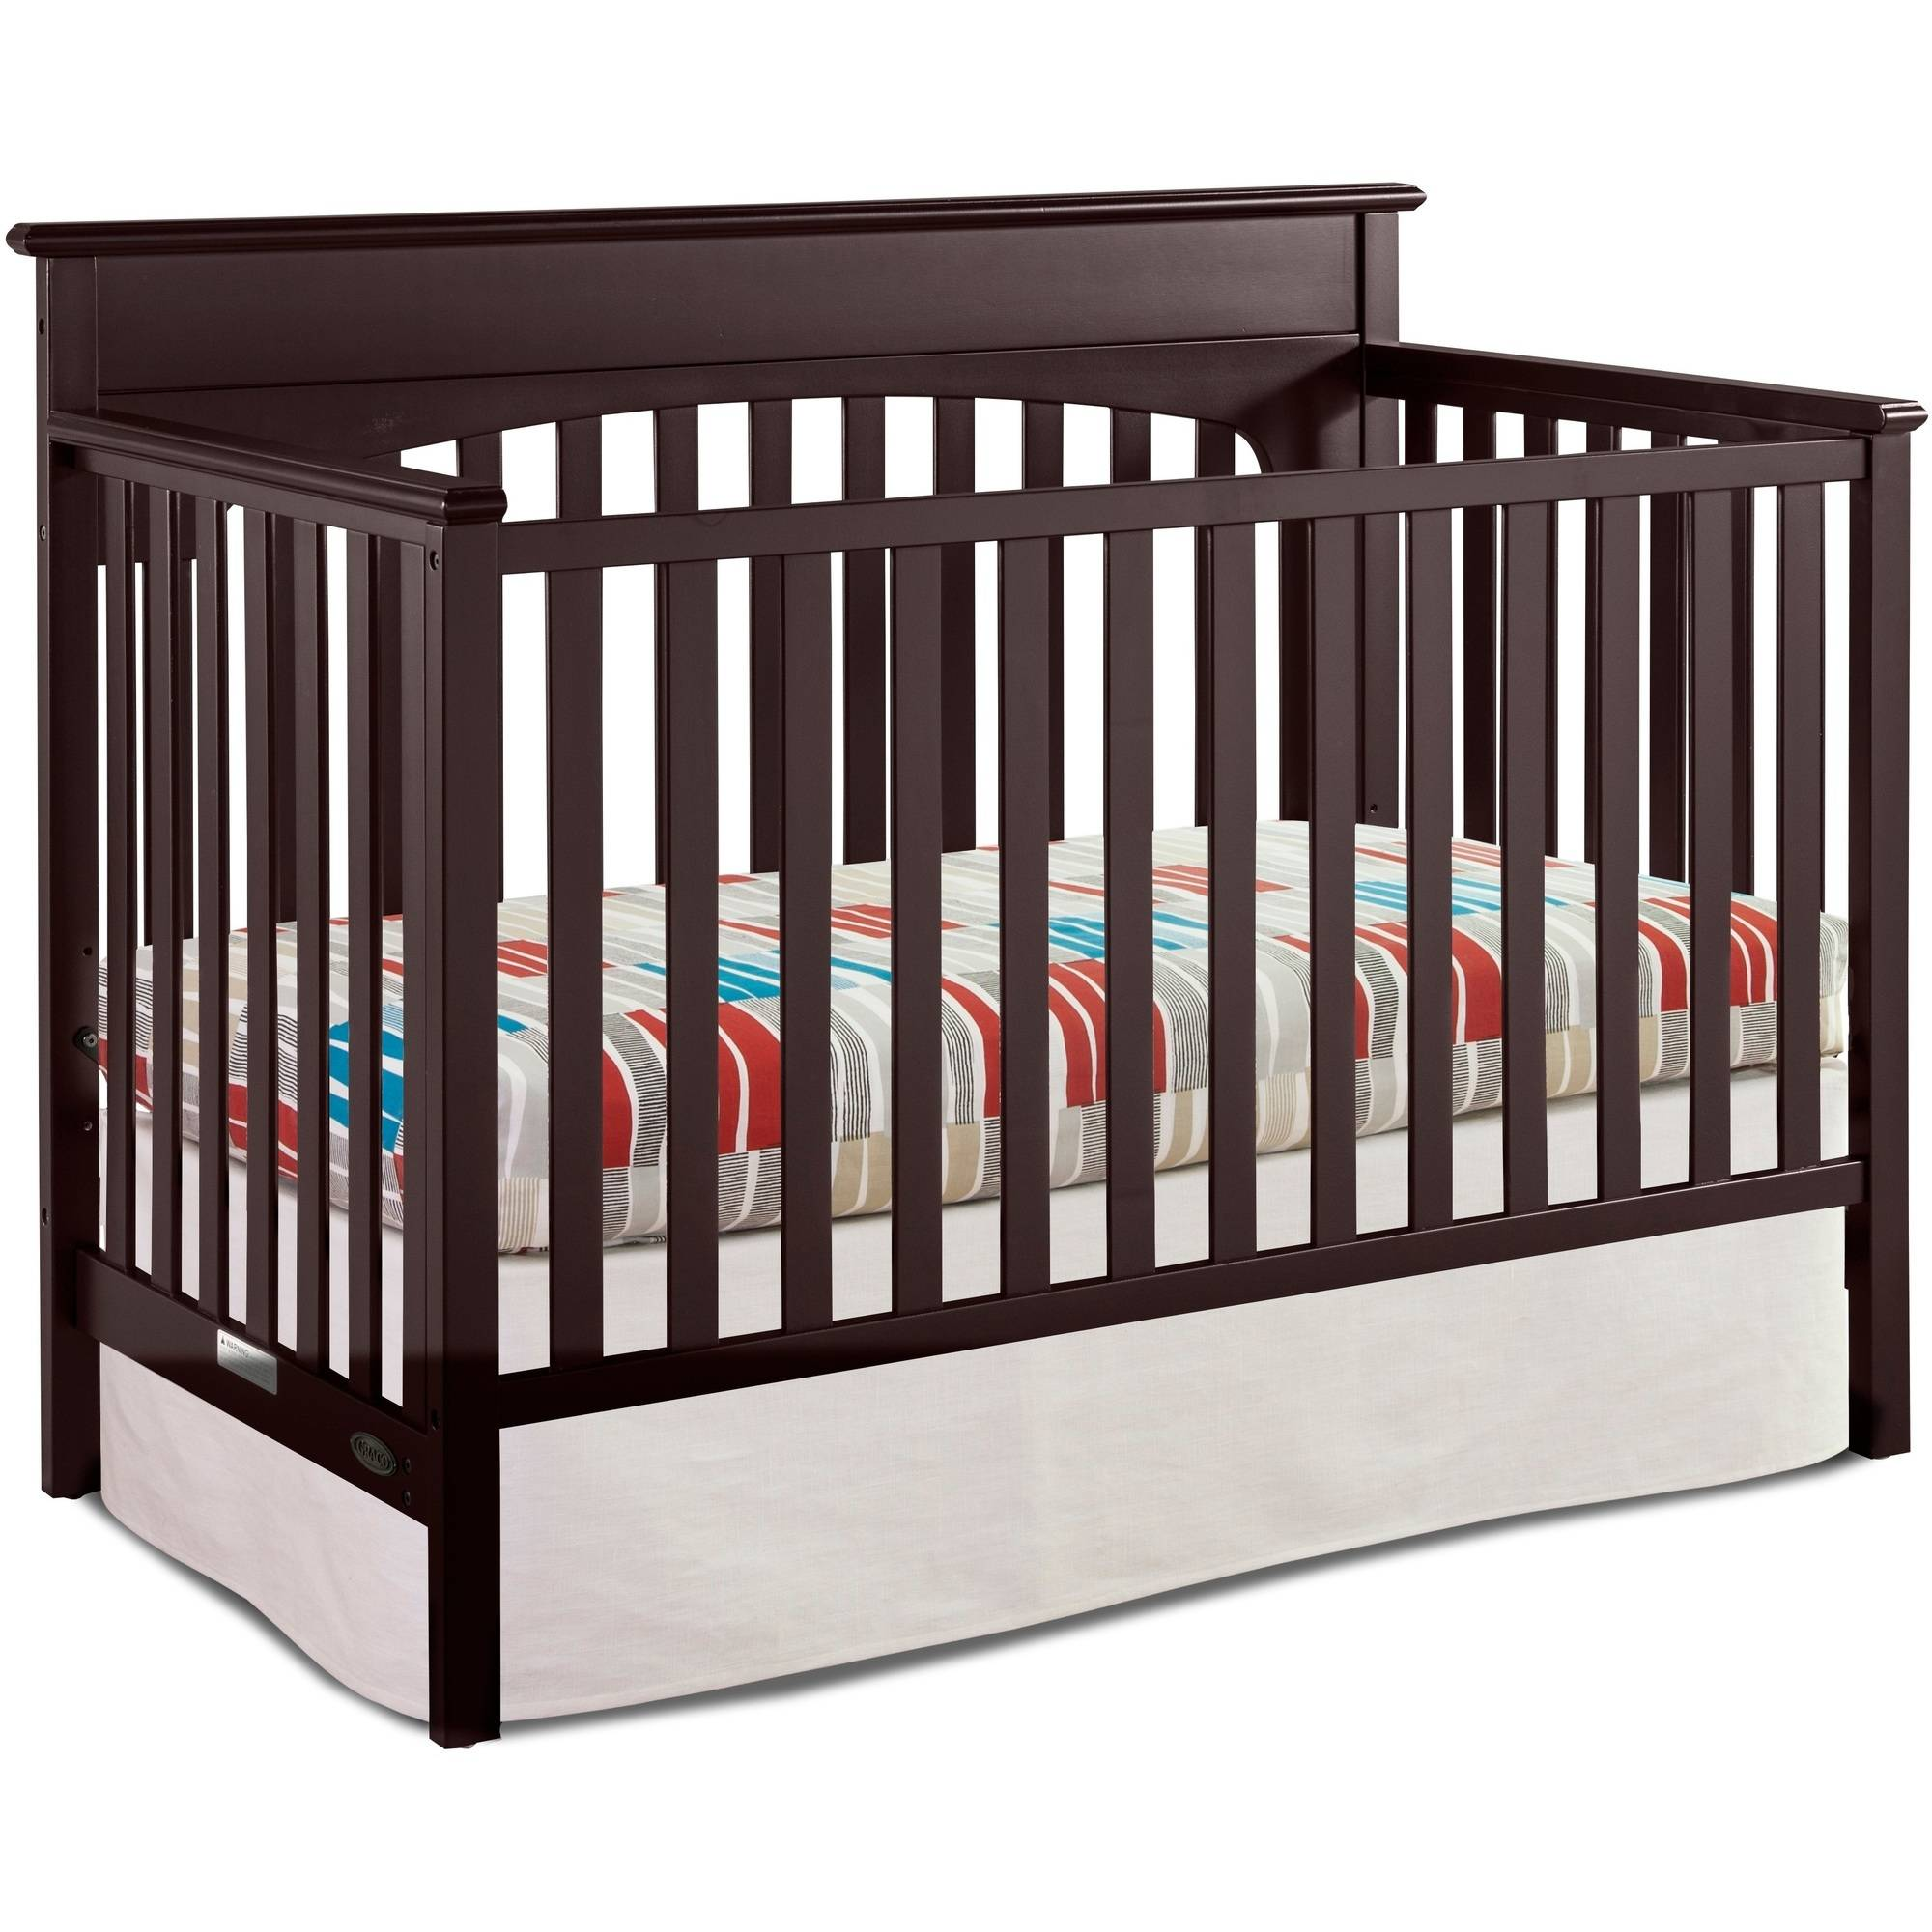 Graco Lauren 4-in-1 Convertible Fixed-Side Classic Crib, Choose Your Finish